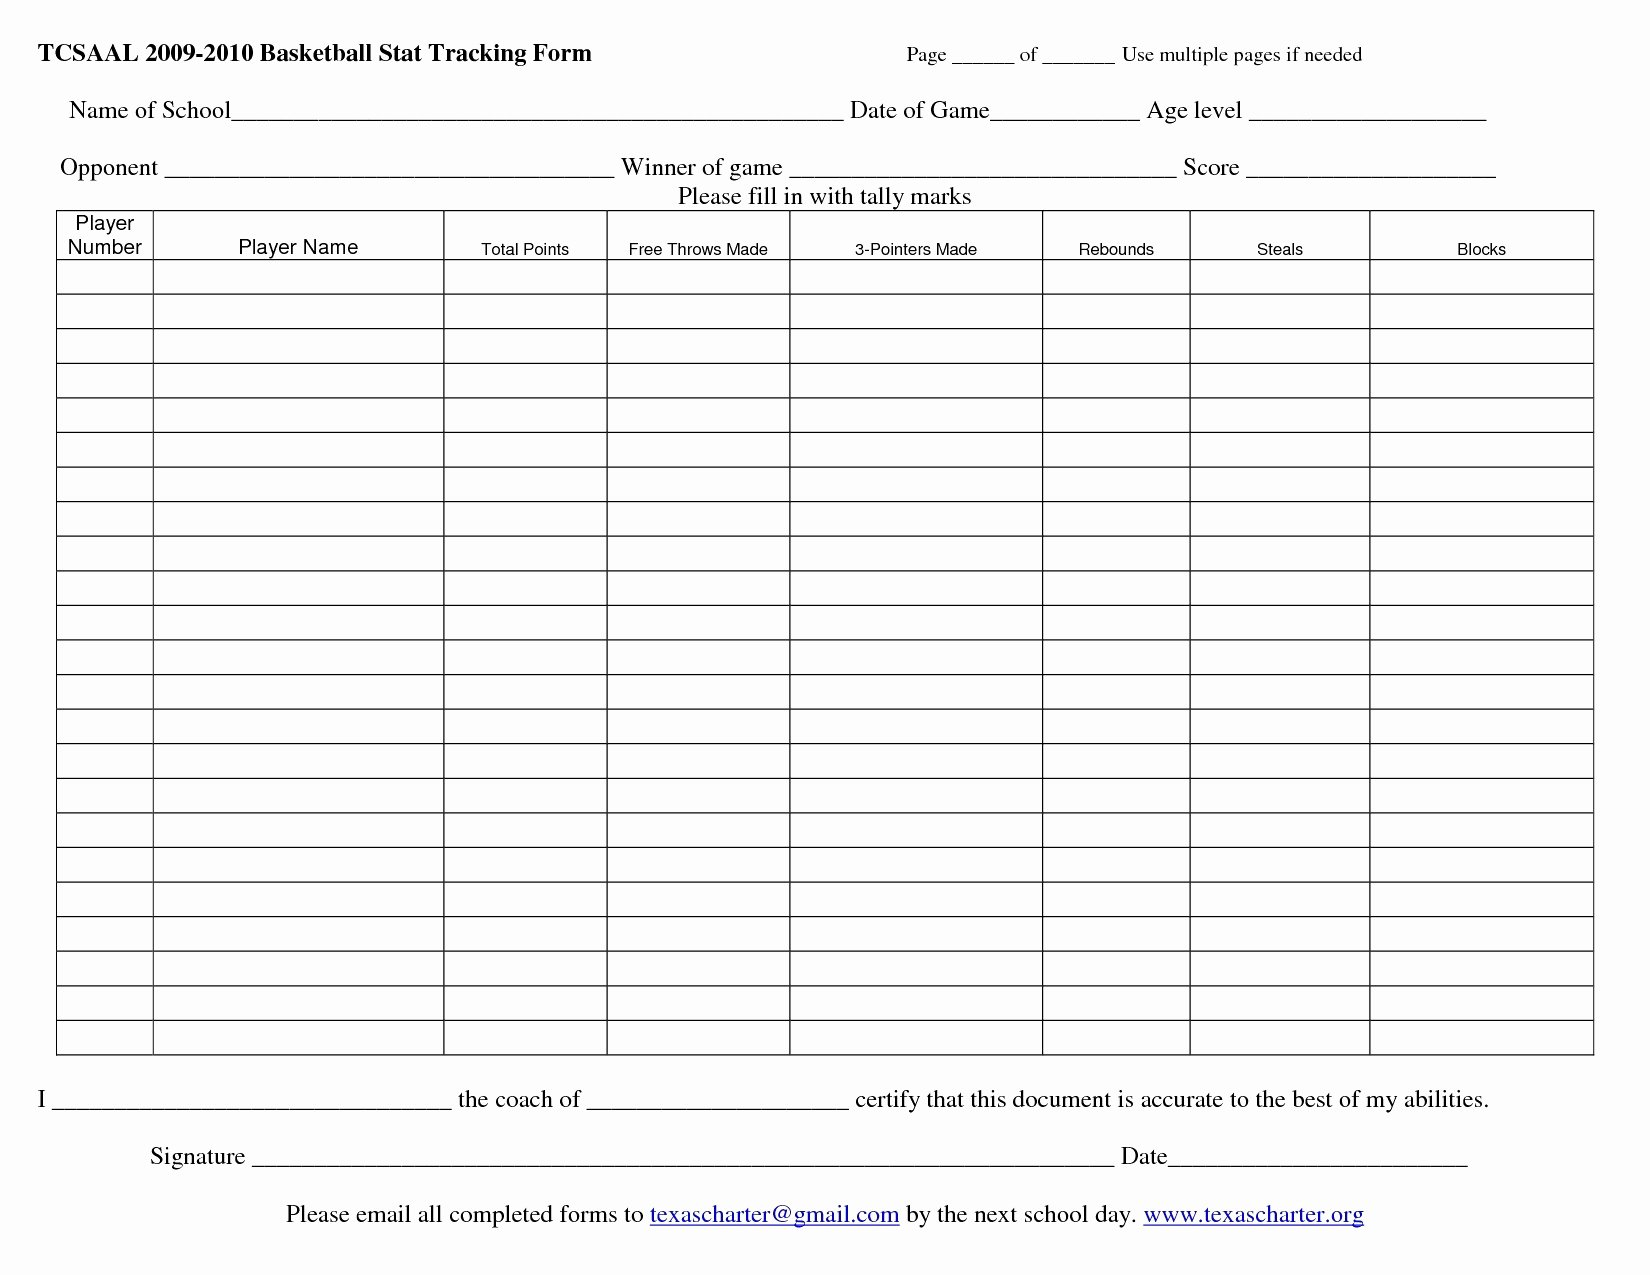 Football Stat Sheet Template Excel Luxury Basketball Stats Spreadsheet Google Spreadshee Basketball